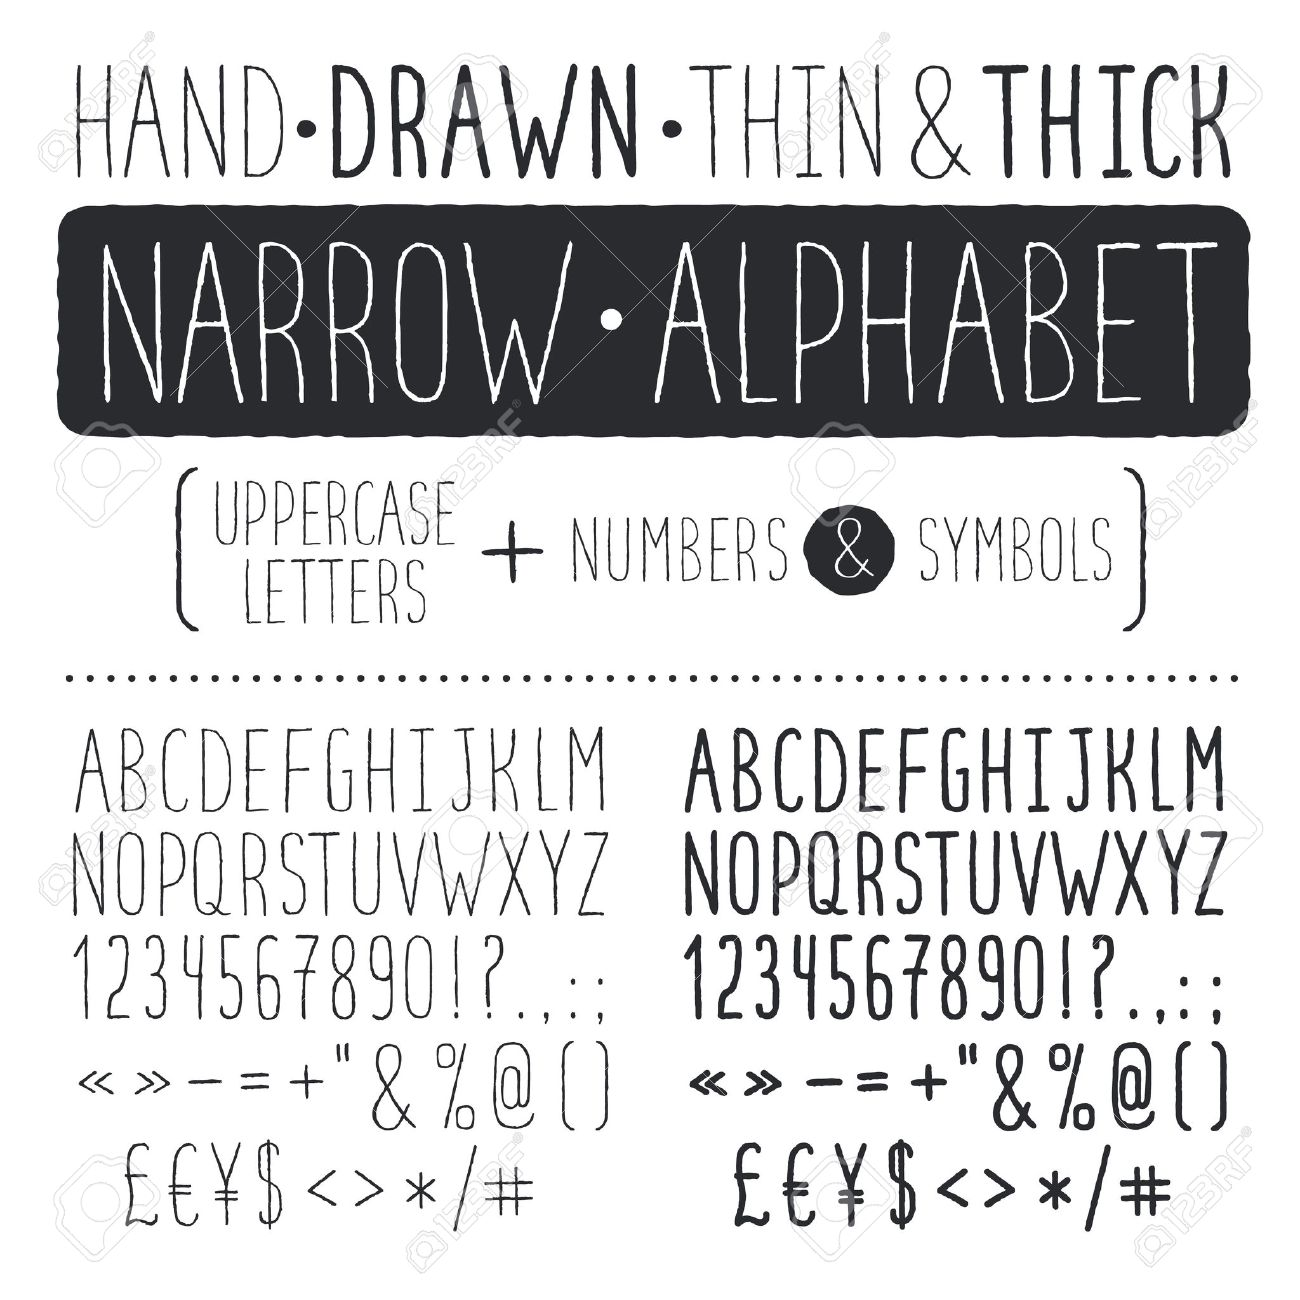 Hand Drawn Narrow Alphabet Uppercase Tall And Thin Letters Isolated On White Background Handdrawn